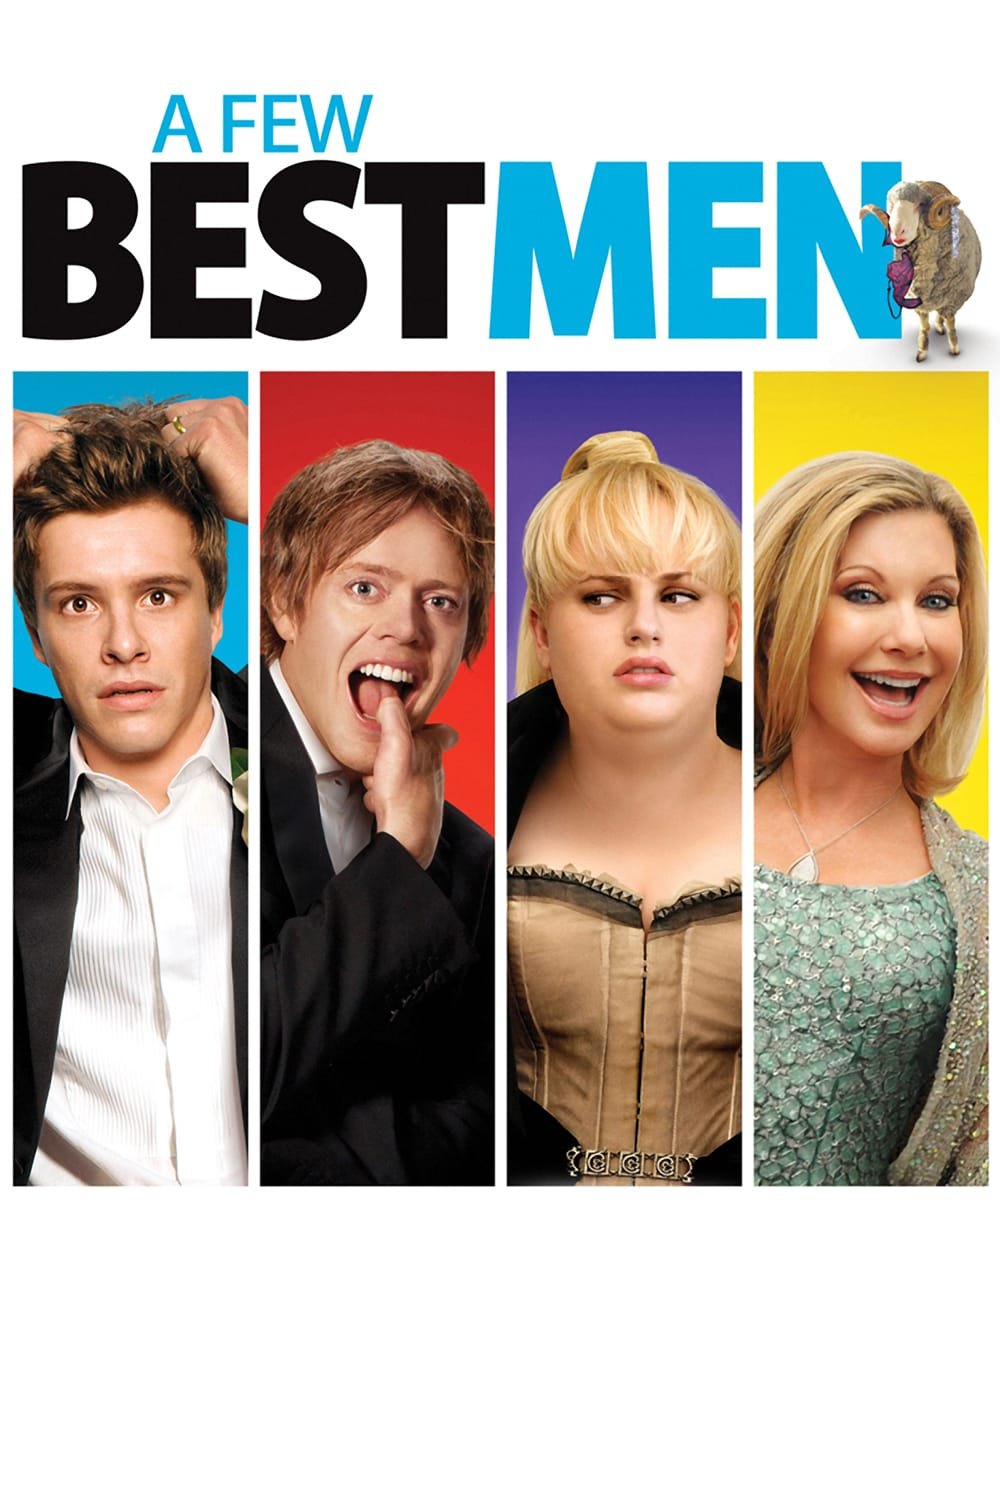 A Few Best Men, 2011